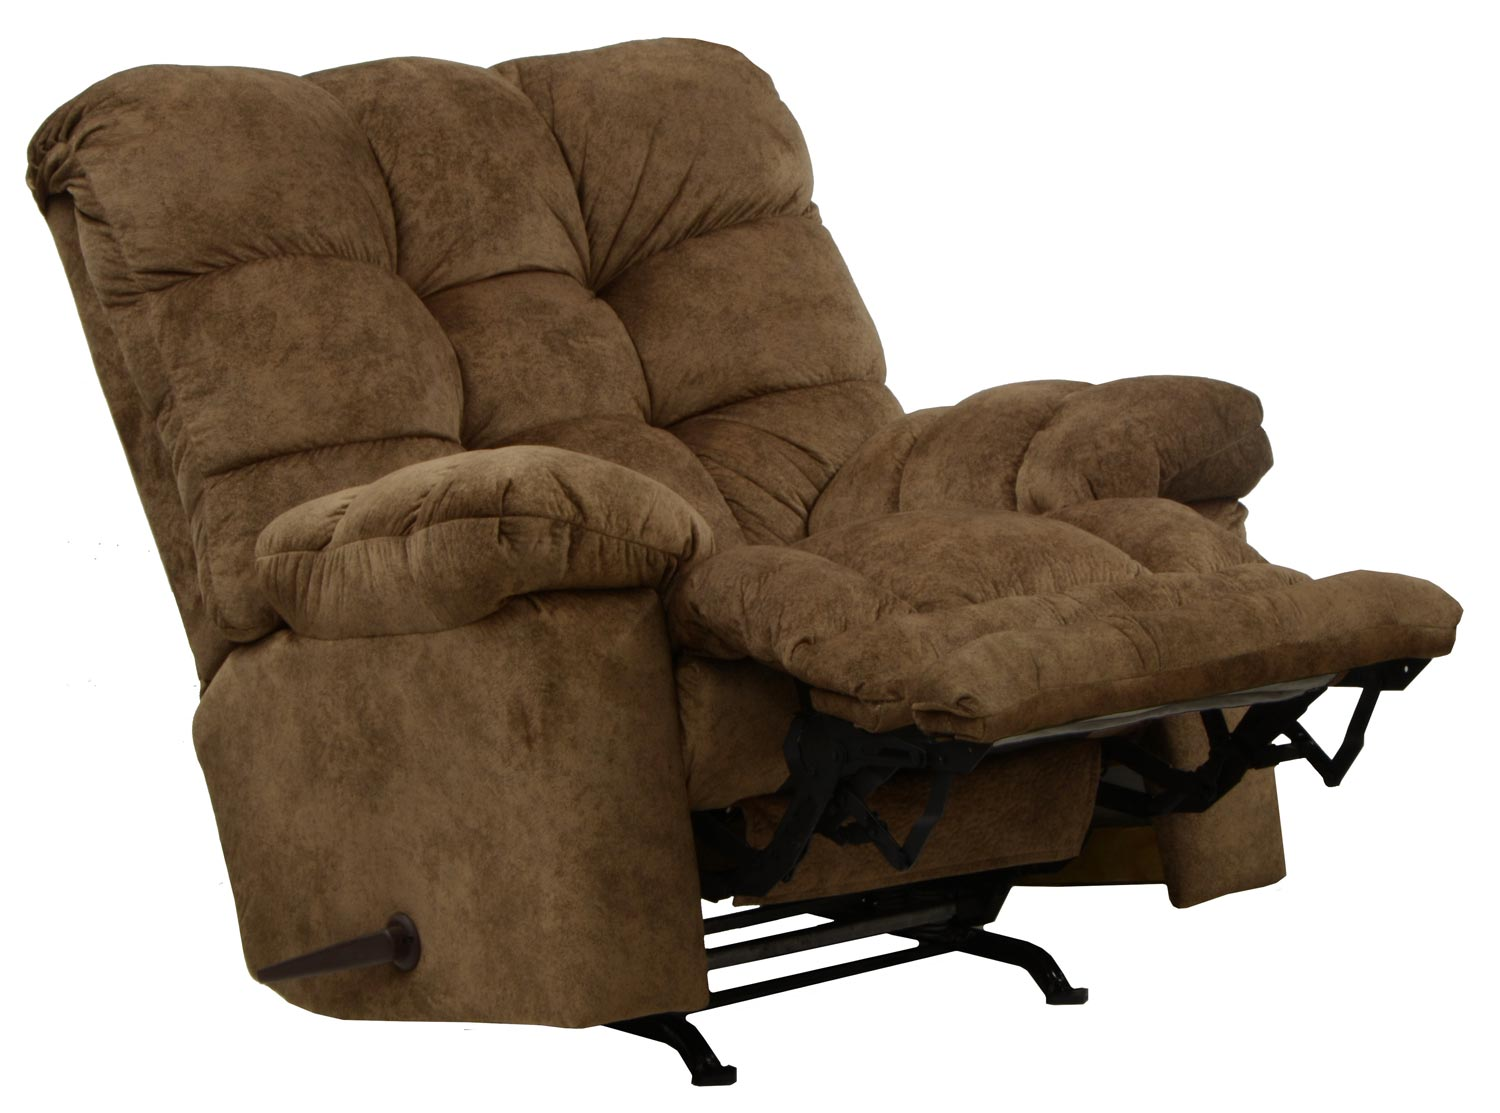 Catnapper bronson chaise rocker recliner with x tra for Catnapper chaise